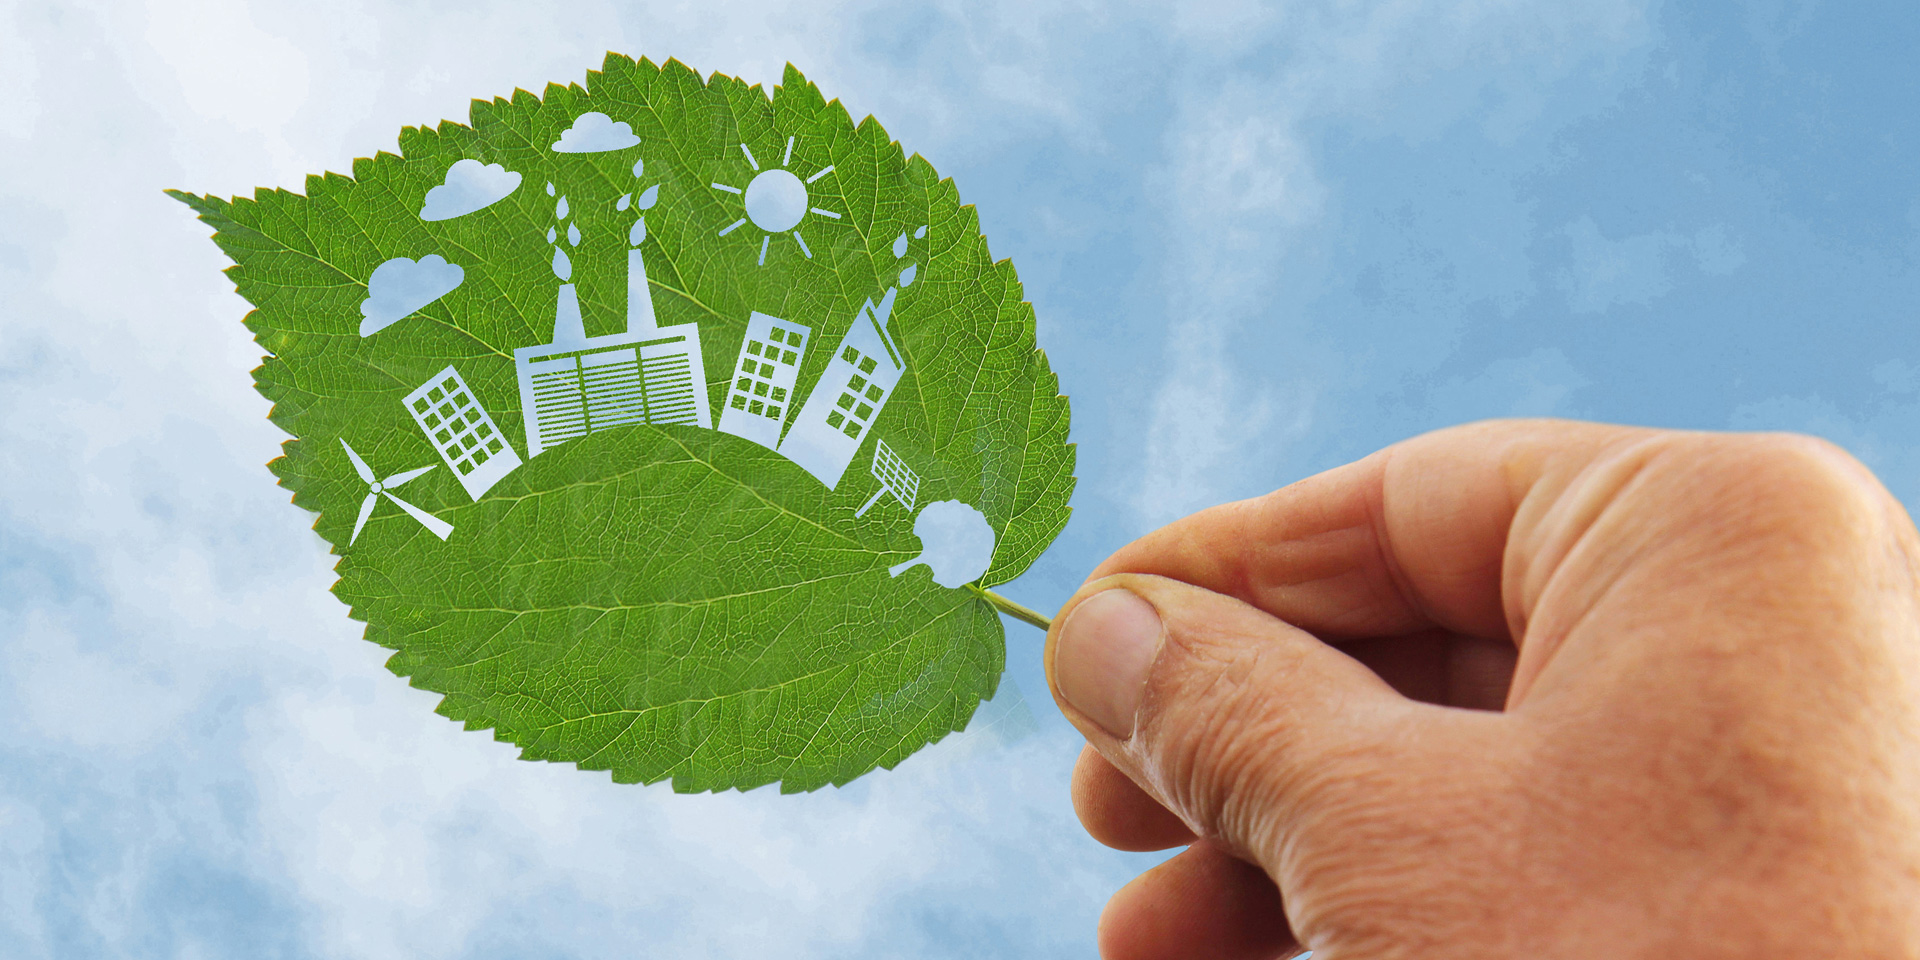 hand holding Green energy concept, cut the leaves of plants Bild-Nr. 88824296 © Alexey Kirillov - stock.adobe.com